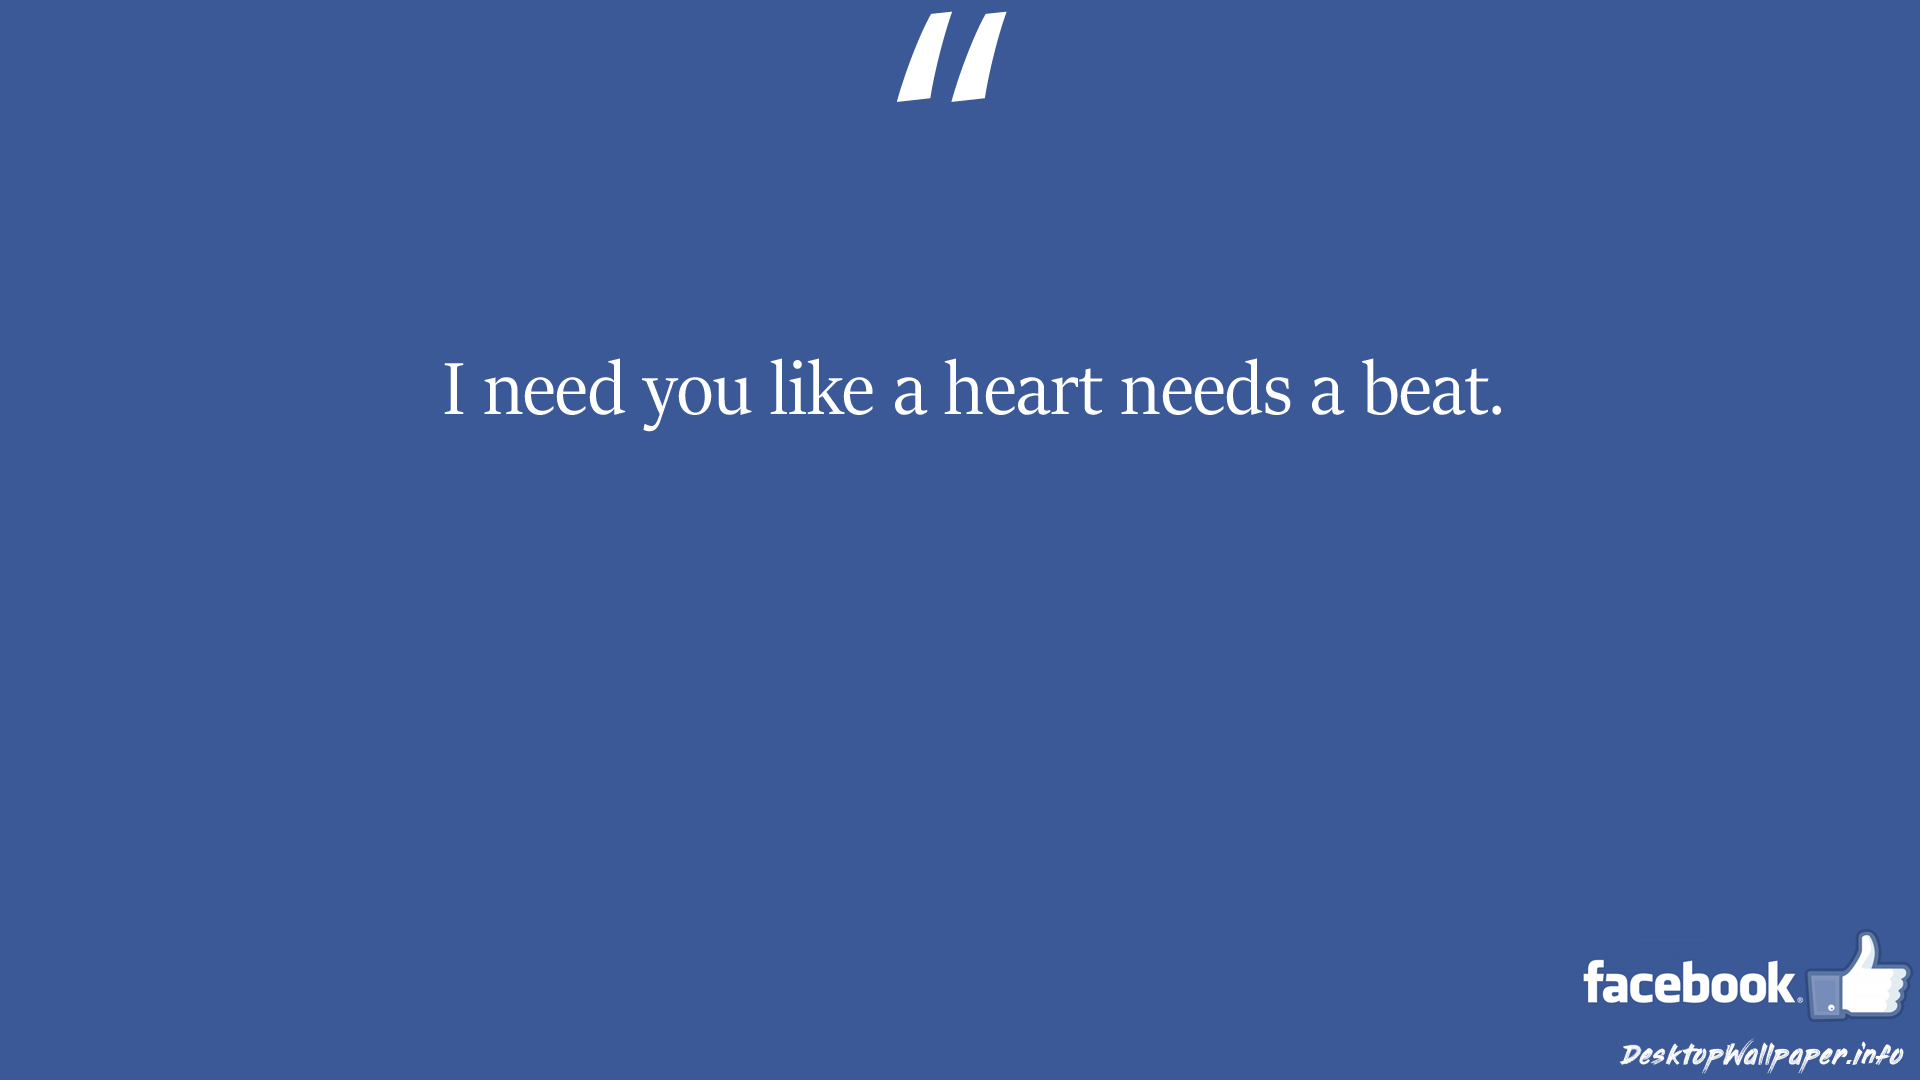 I need you like a heart needs a beat facebook status